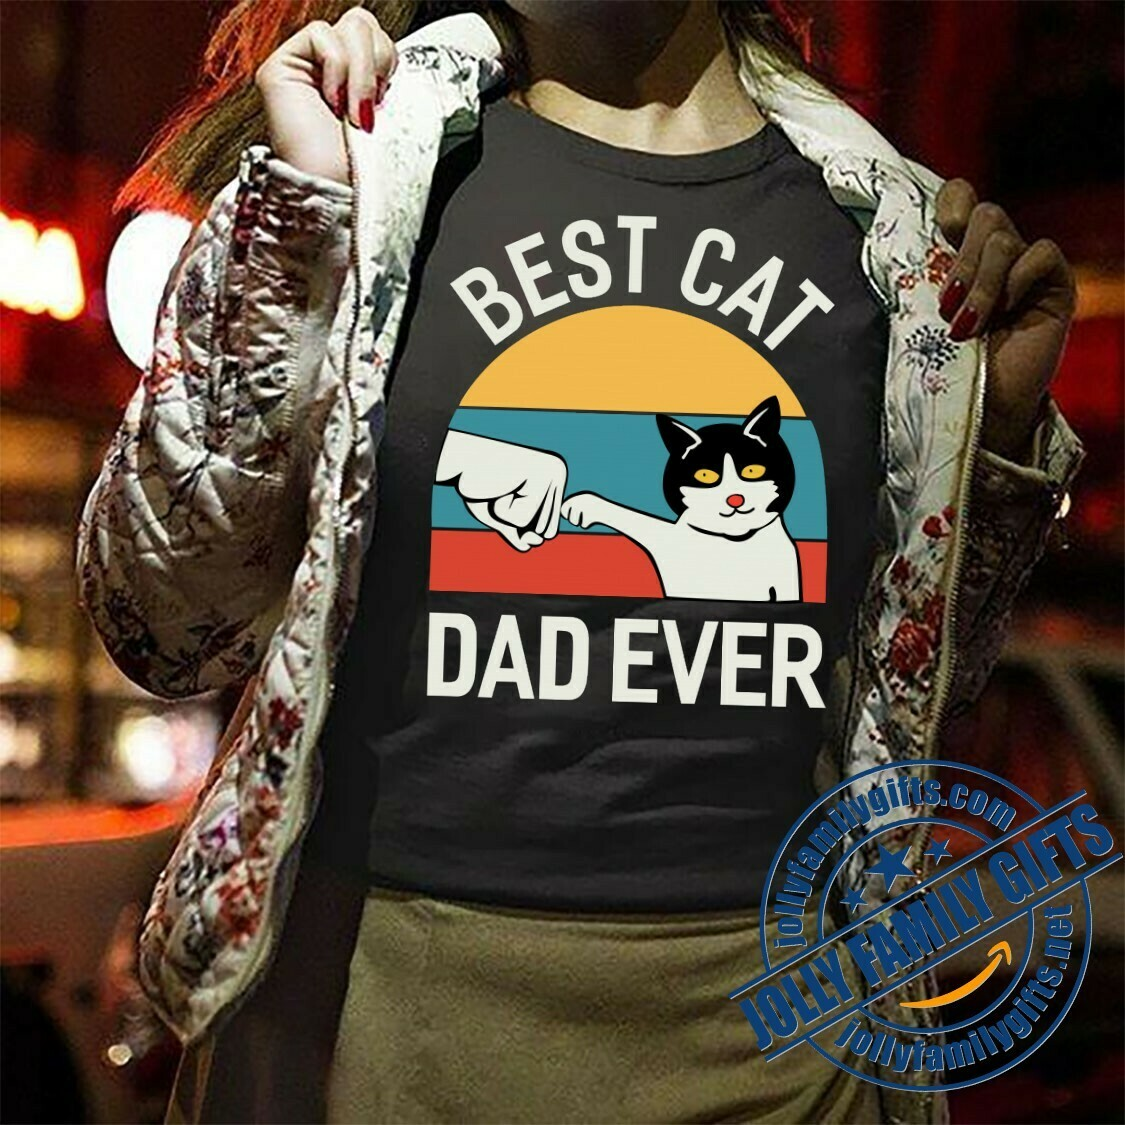 Vintage Best Cat Dad Ever Bump Fit PaPaw Fist Bump Gift For grandpa Papa Men,Daddy Papaw,Hhusband,Father's Day T-Shirt Hoodie Sweatshirt Sweater Tee Kids Youth Gifts Jolly Family Gifts